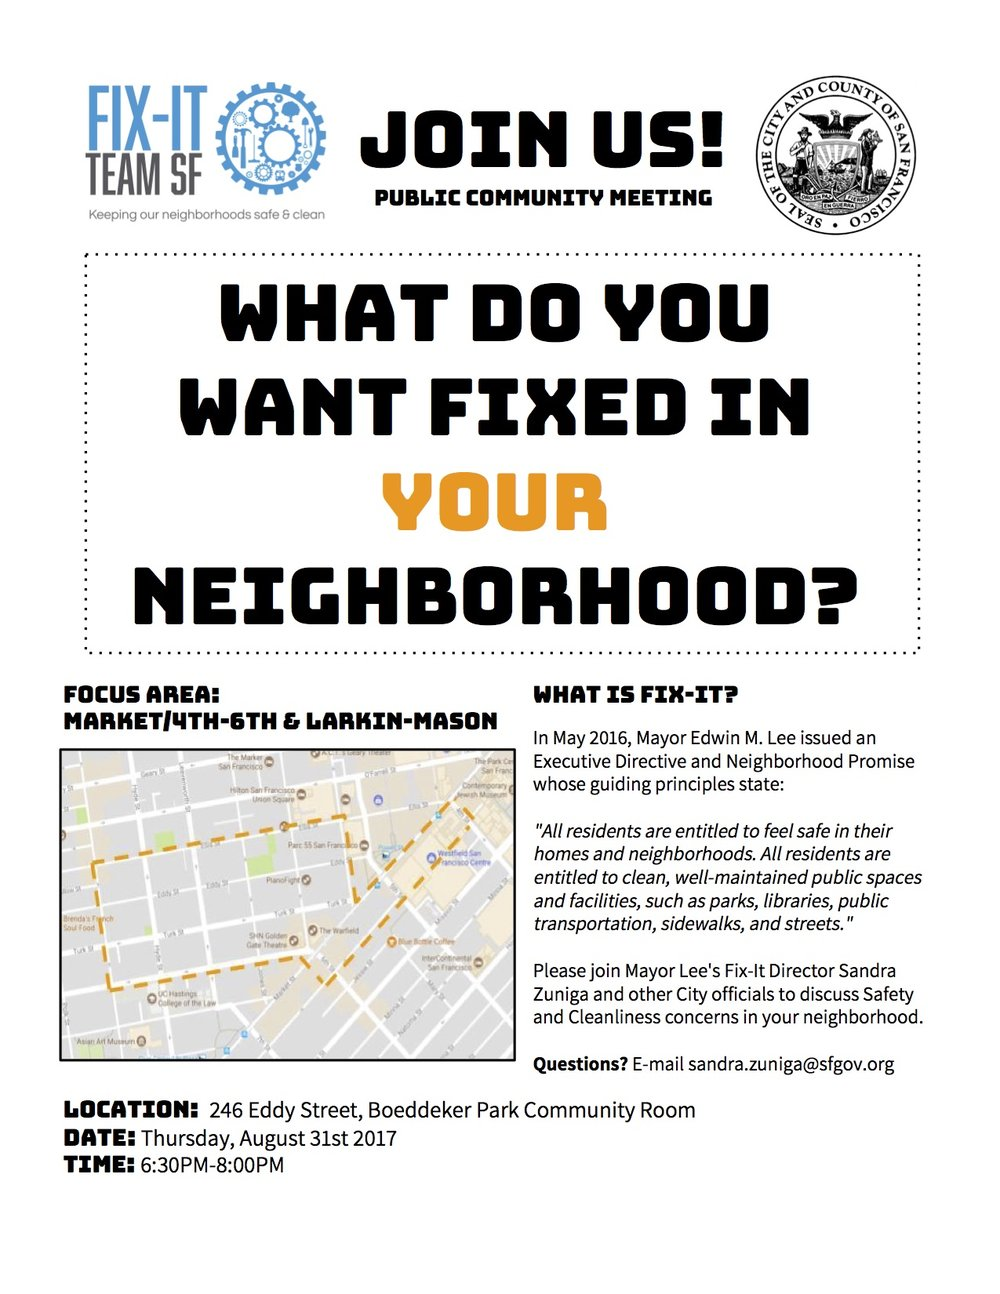 Tenderloin_Community_Meeting_Flyer_08.31.17 copy.jpg